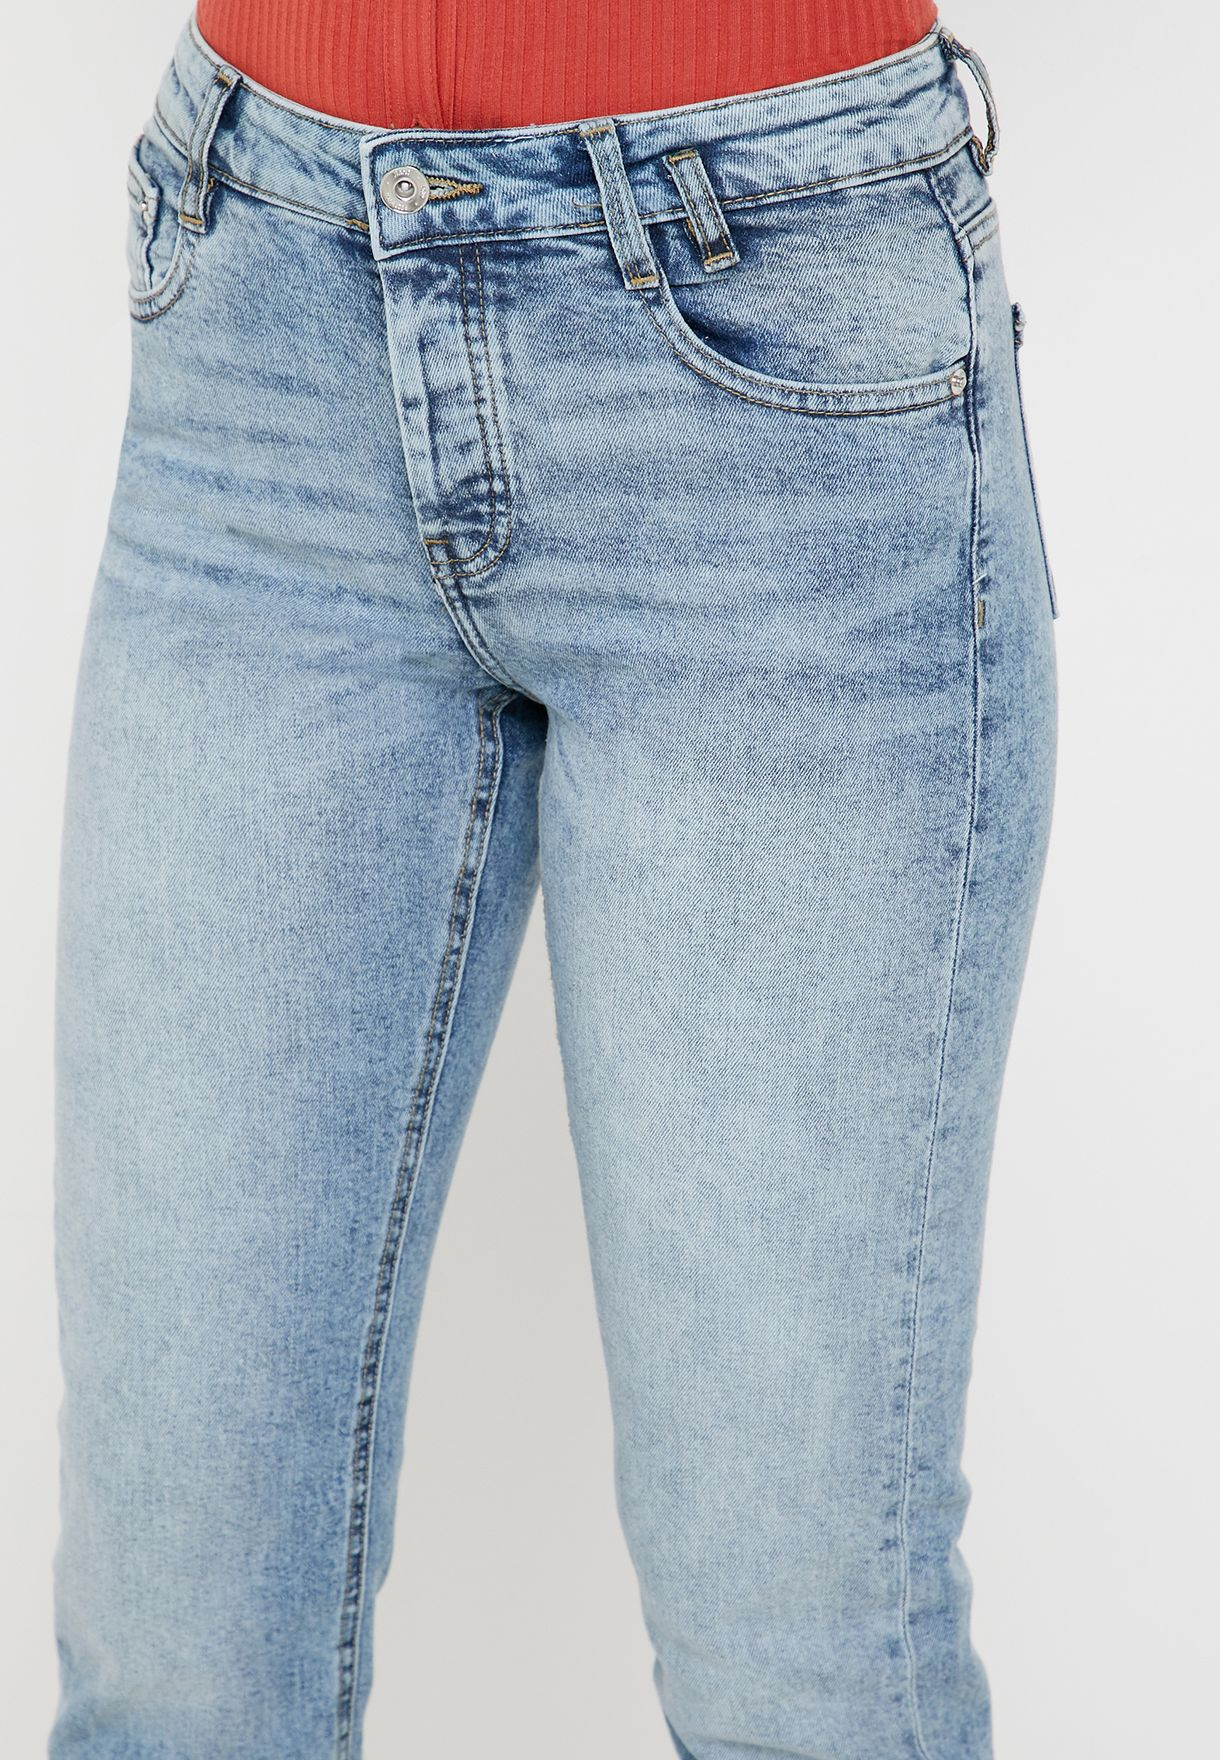 Bleached Skinny Jeans